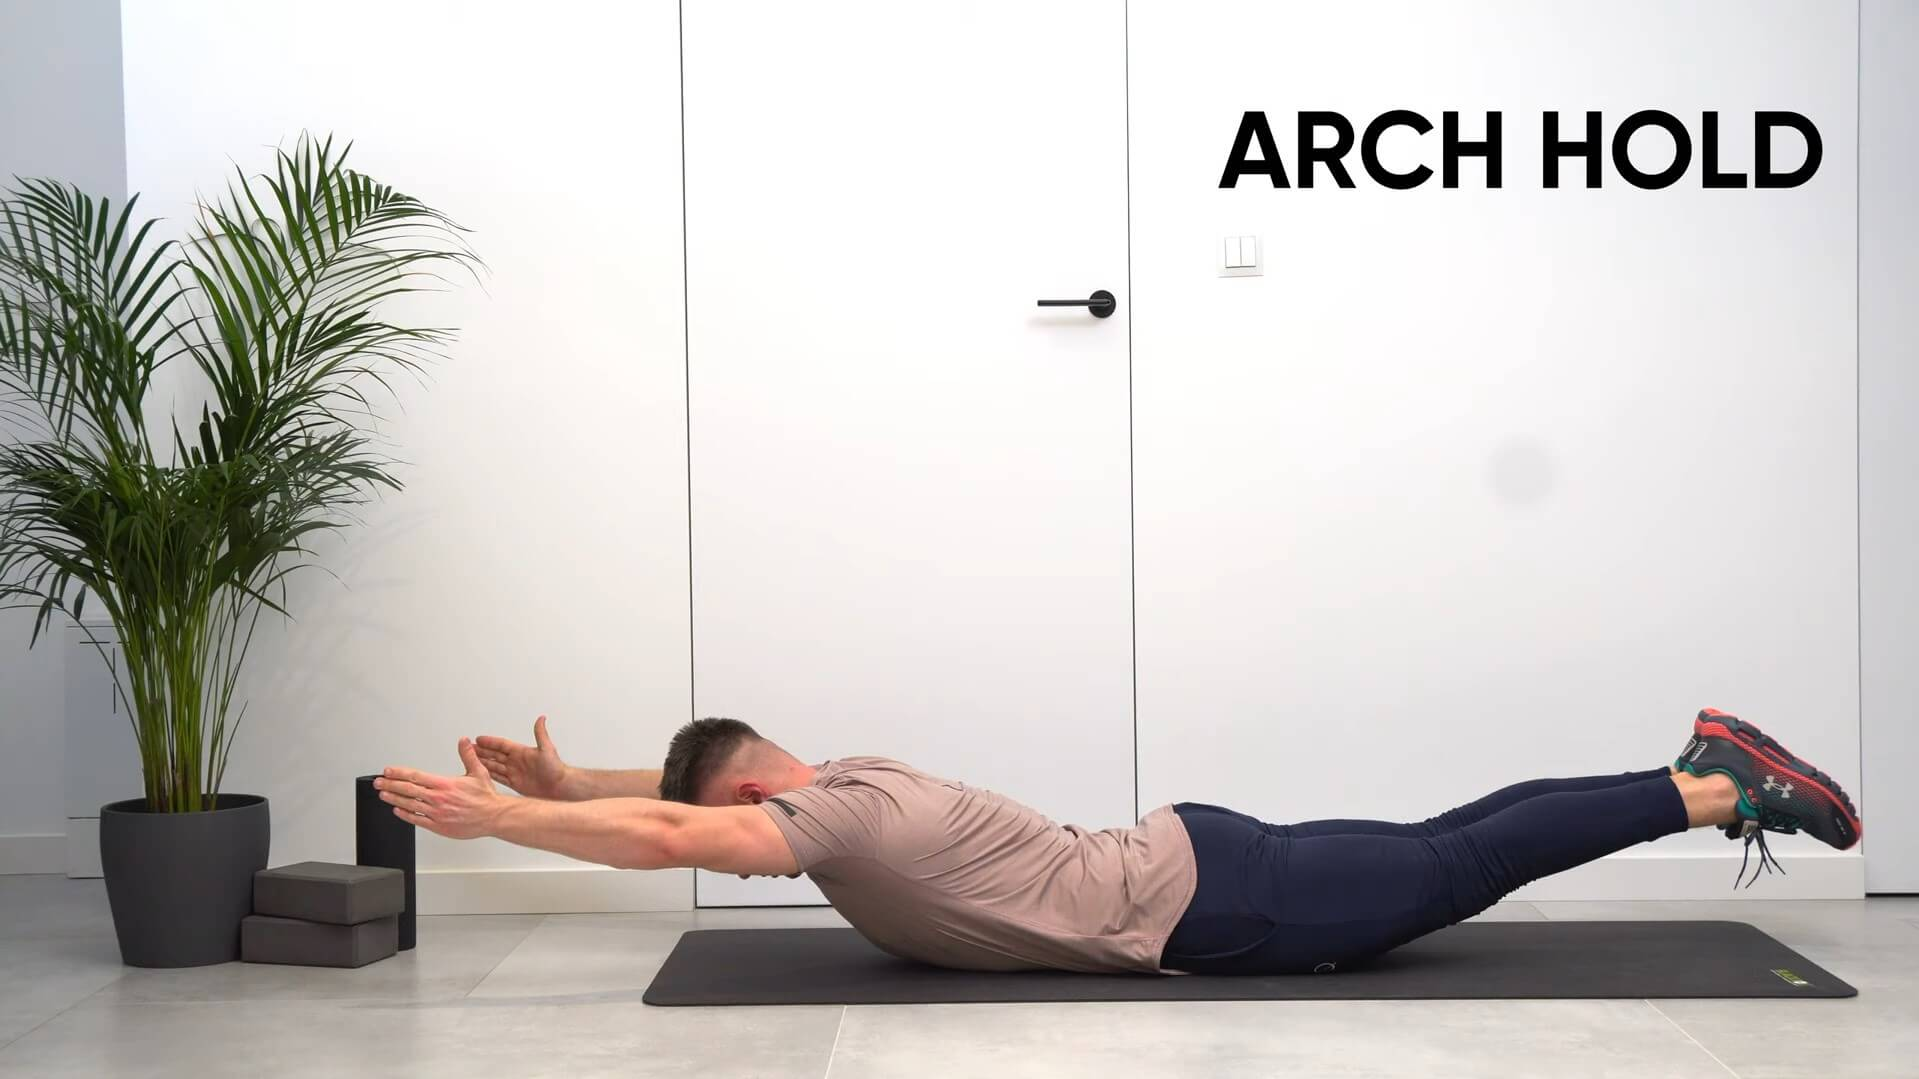 Arch hold